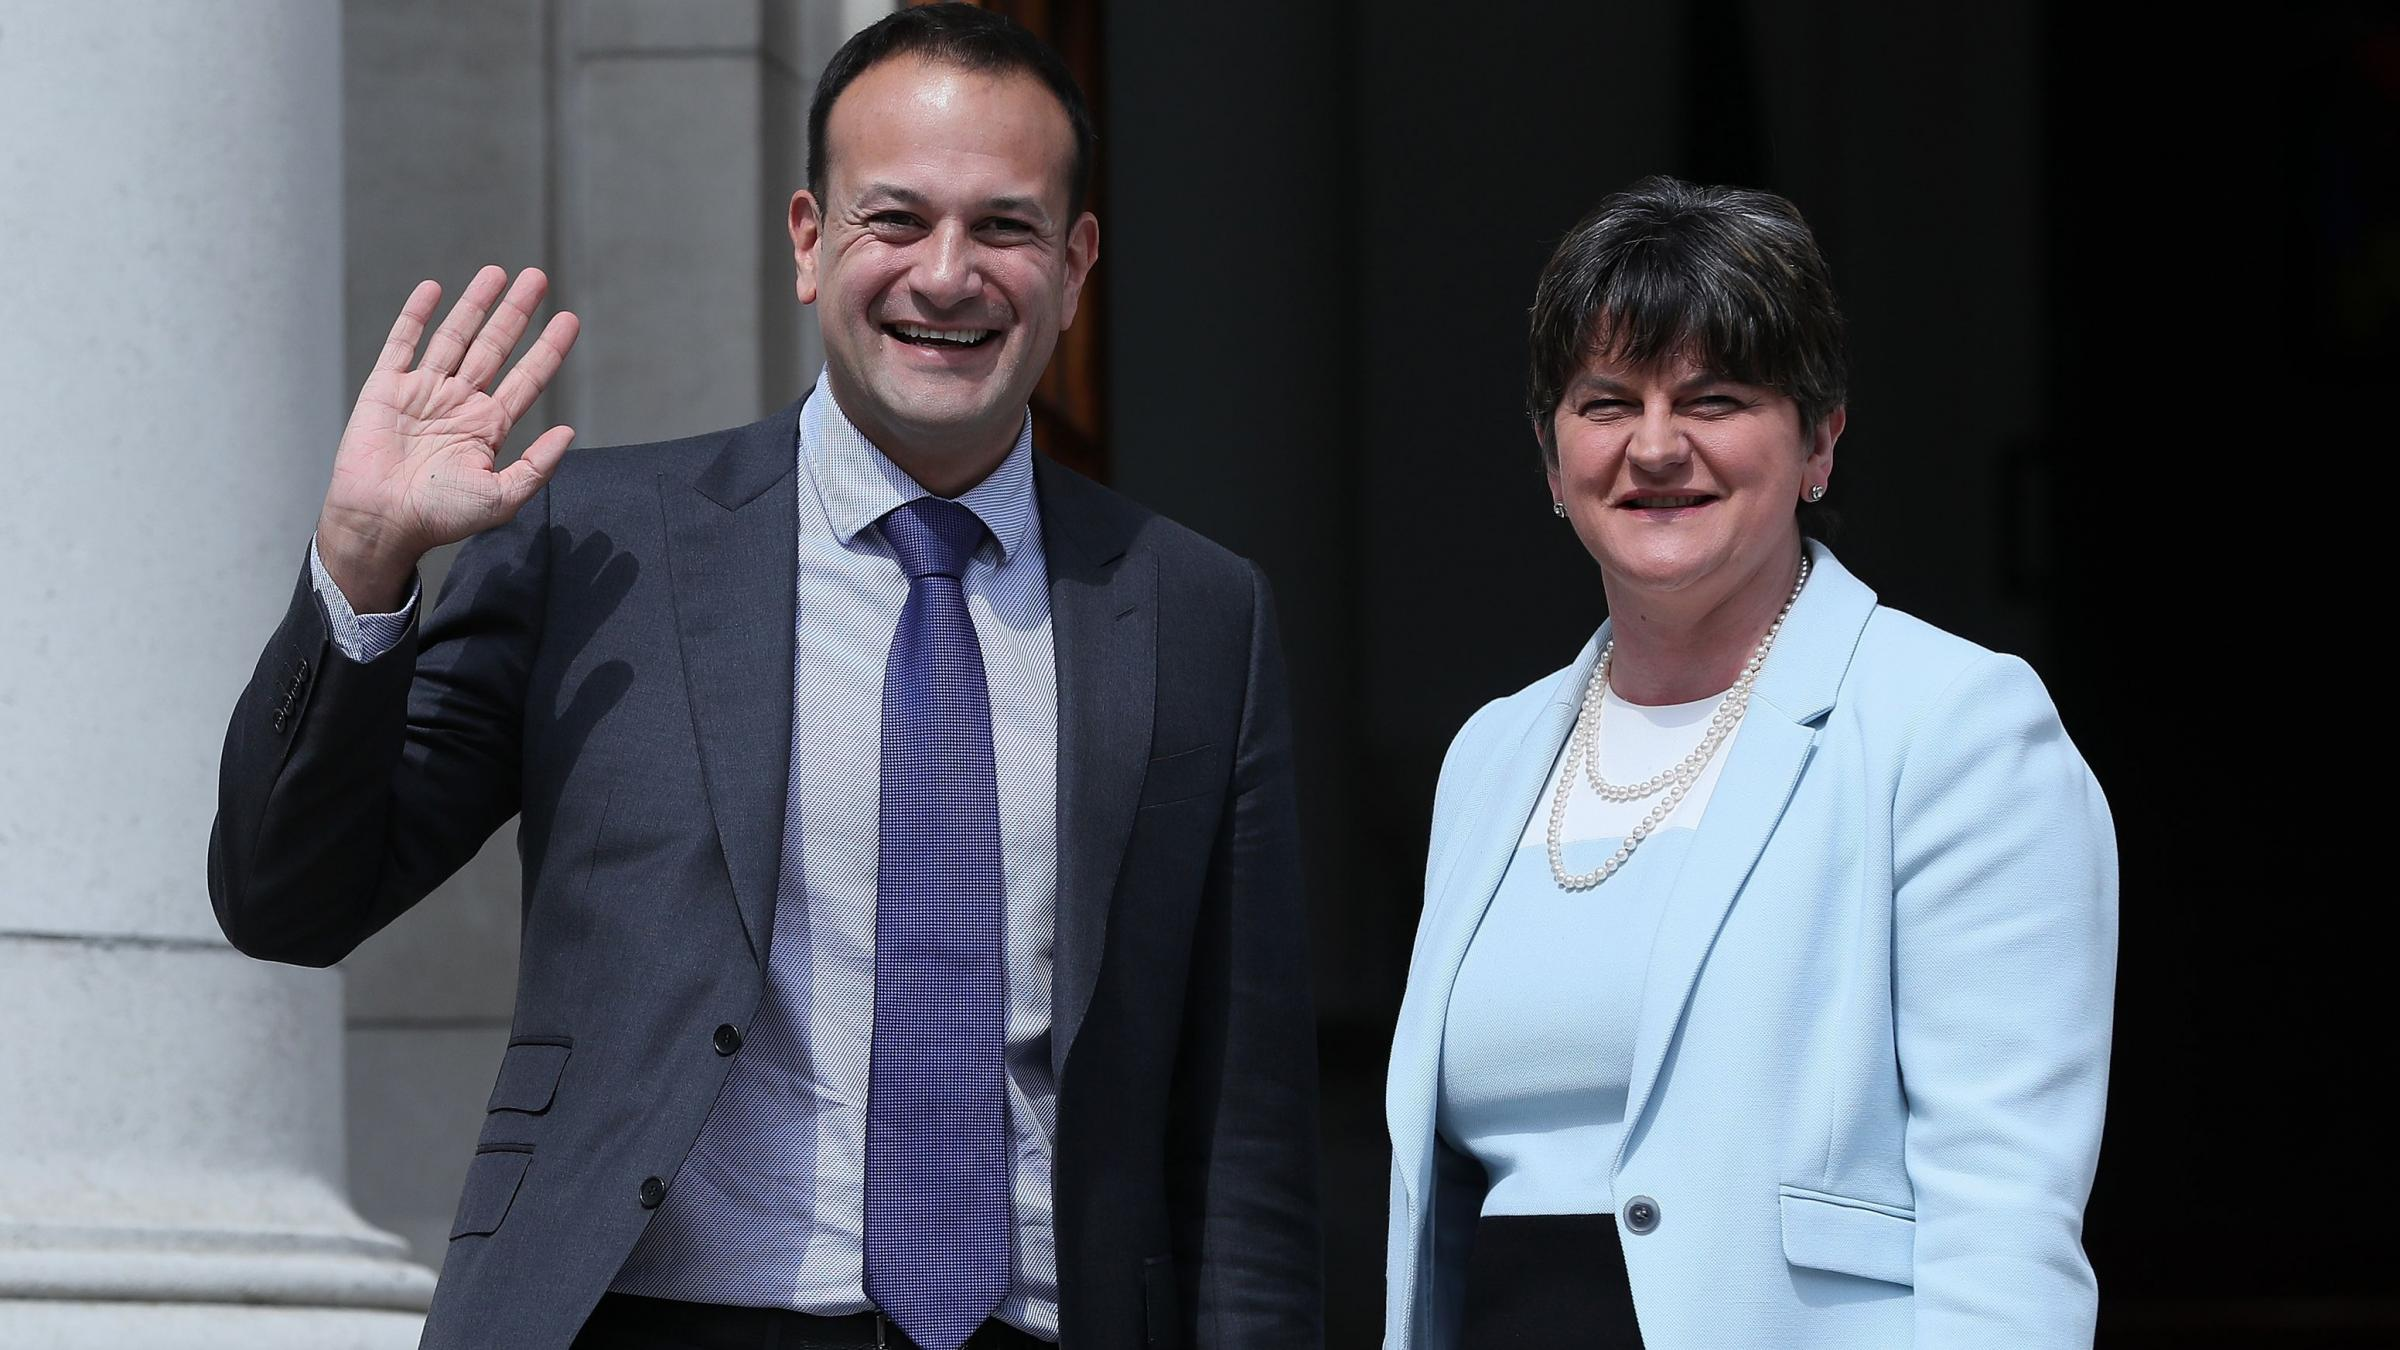 Deal with Sinn Fein 'very much doable', says DUP's Arlene Foster